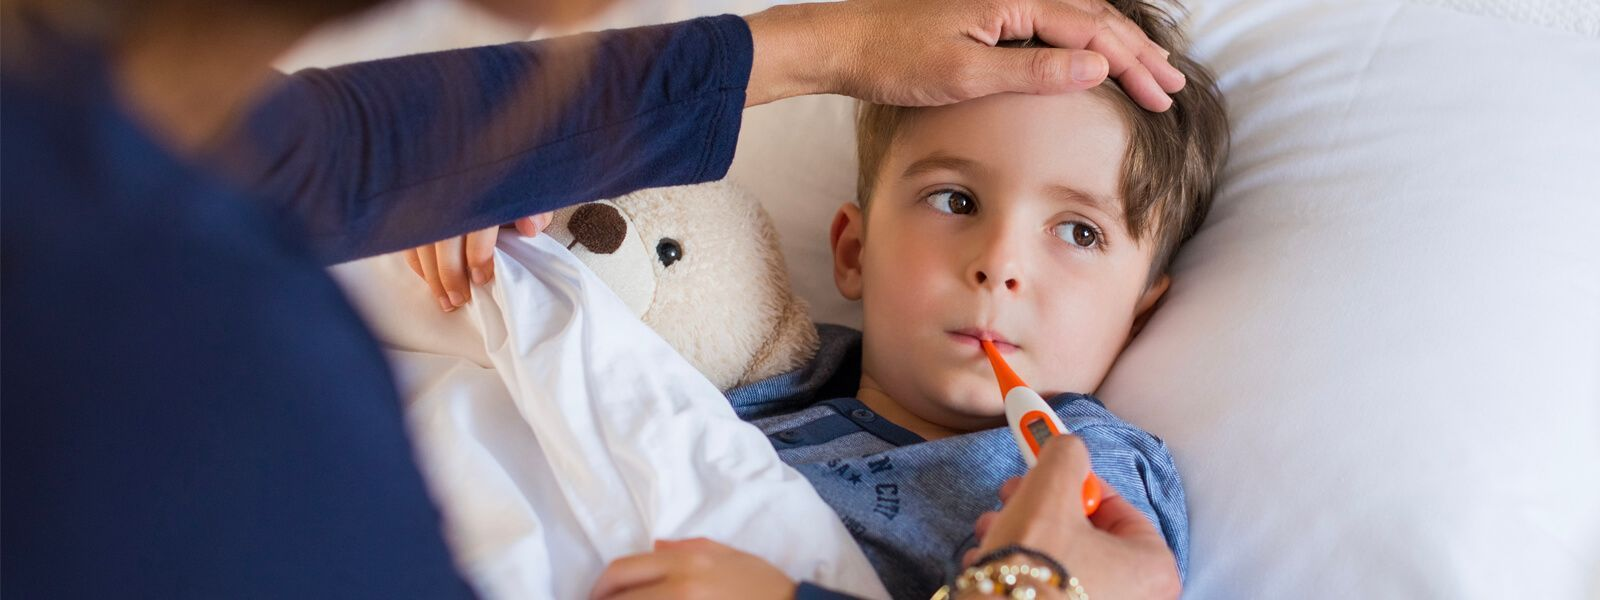 Viral Illnesses in Children and How to Prevent Them